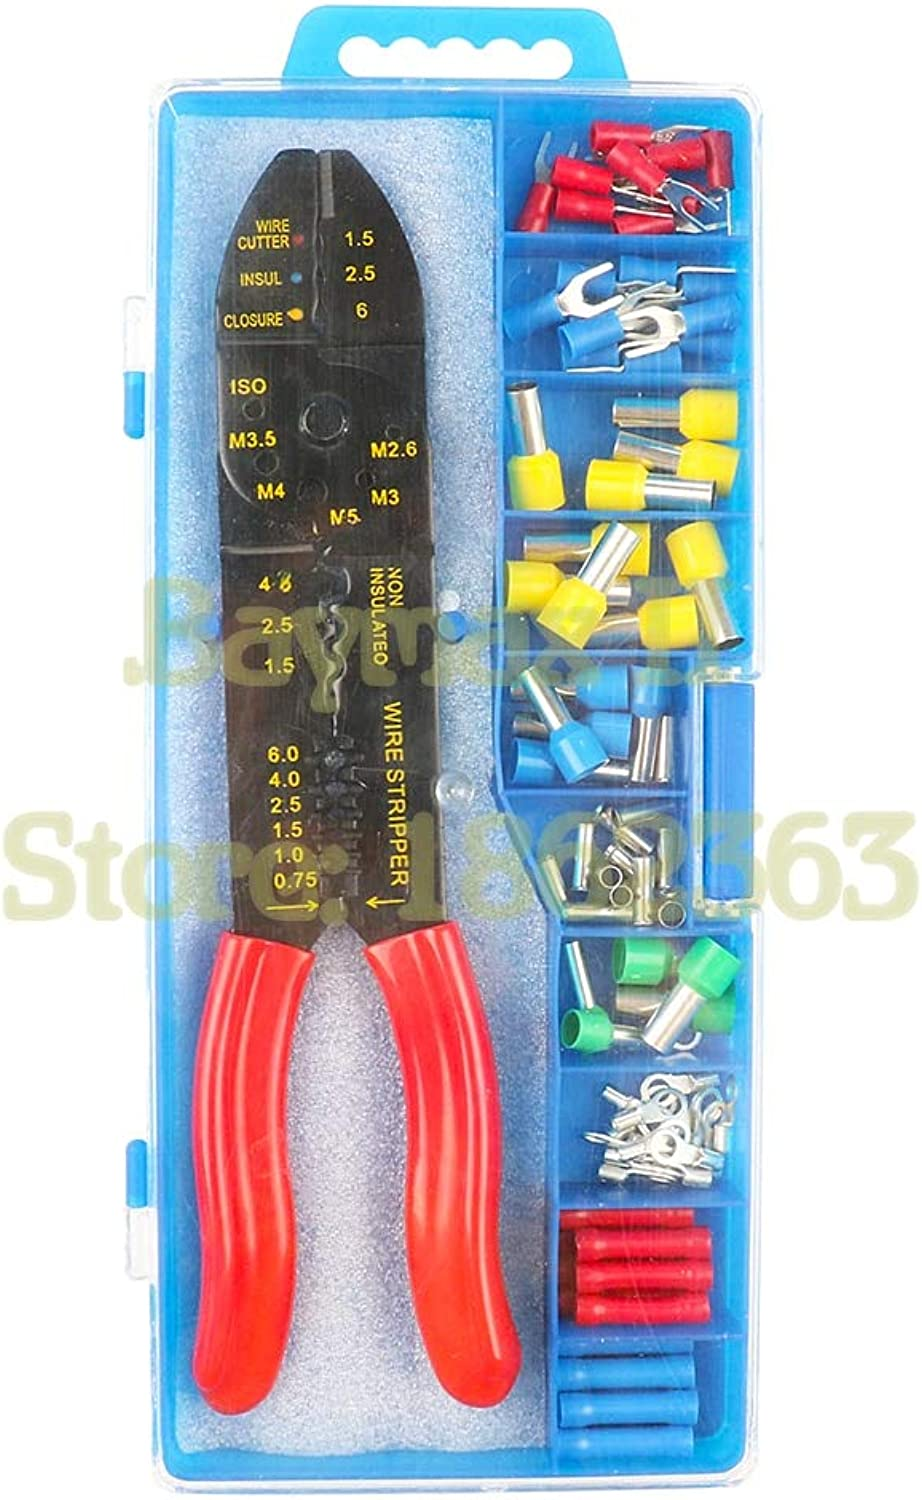 FS-01 Multi-Functional Cimping Tool Wire Stripper with Kinds Insulation Non-Insulation Ferrules and Fork Type Termianls